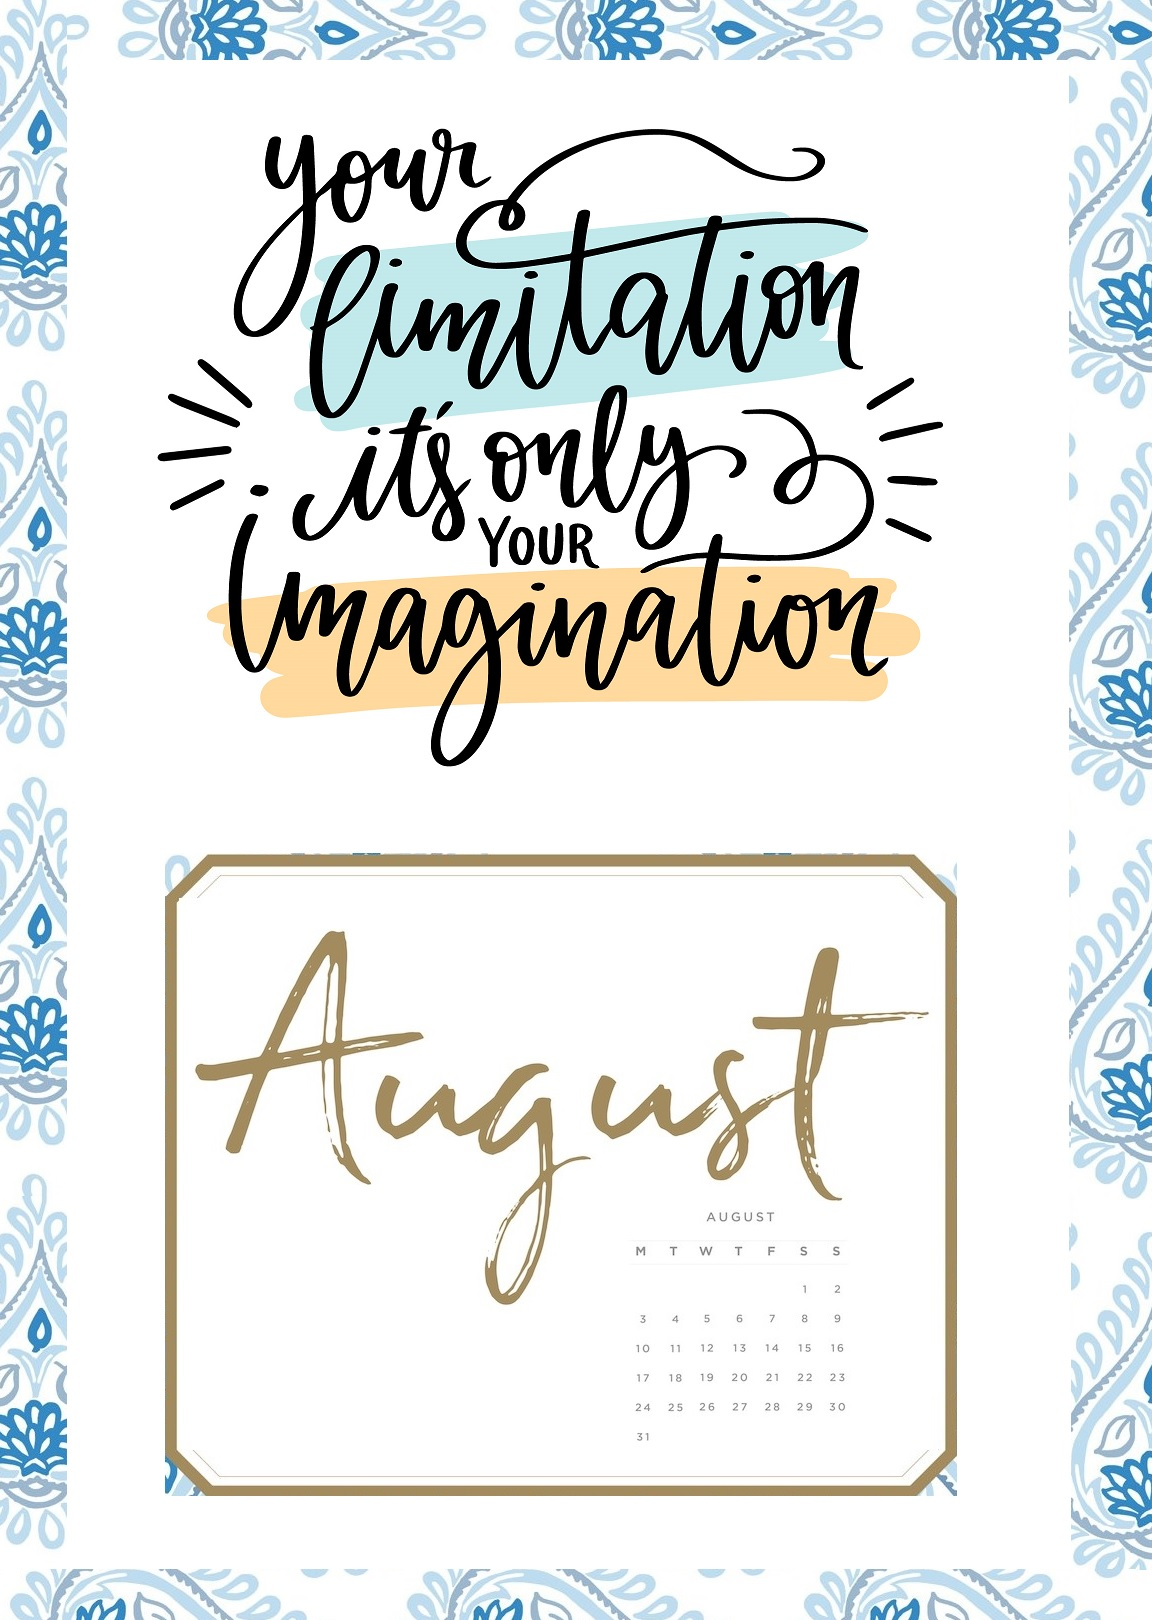 August 2020 Calendar With Quotes